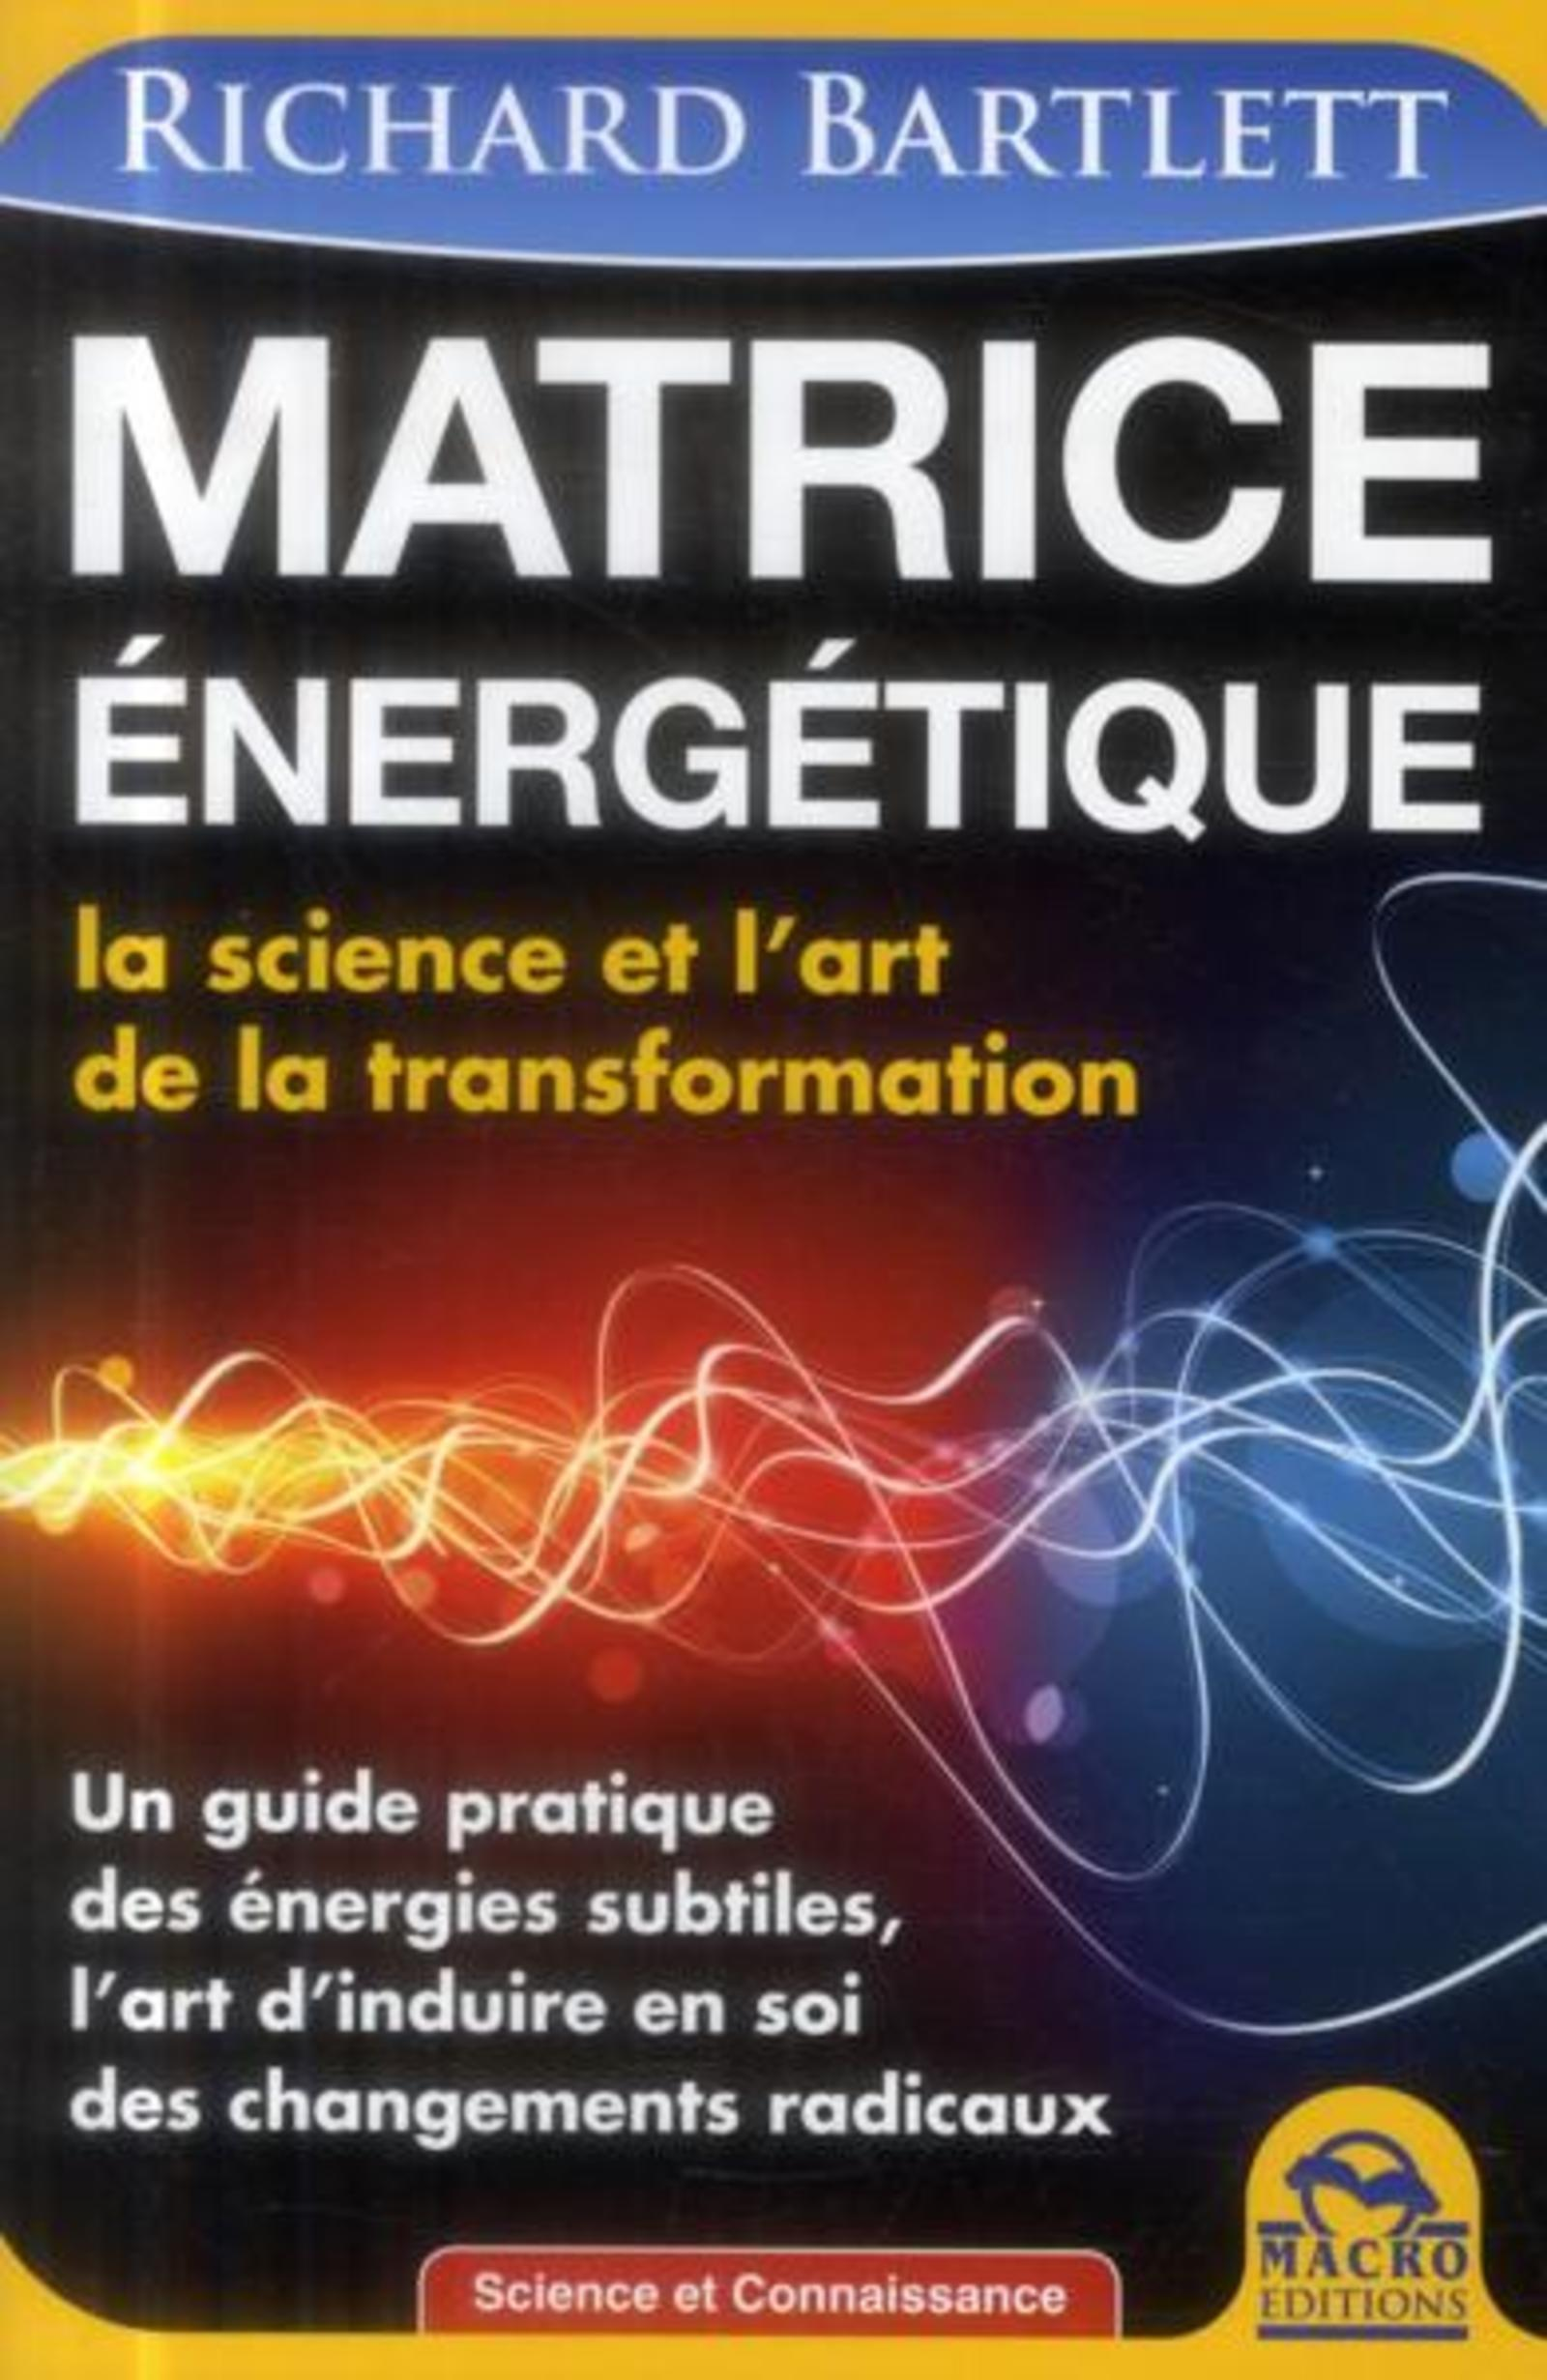 MATRICE ENERGETIQUE LA SCIENCE ET L'ART DE LA TRANSFORMATION